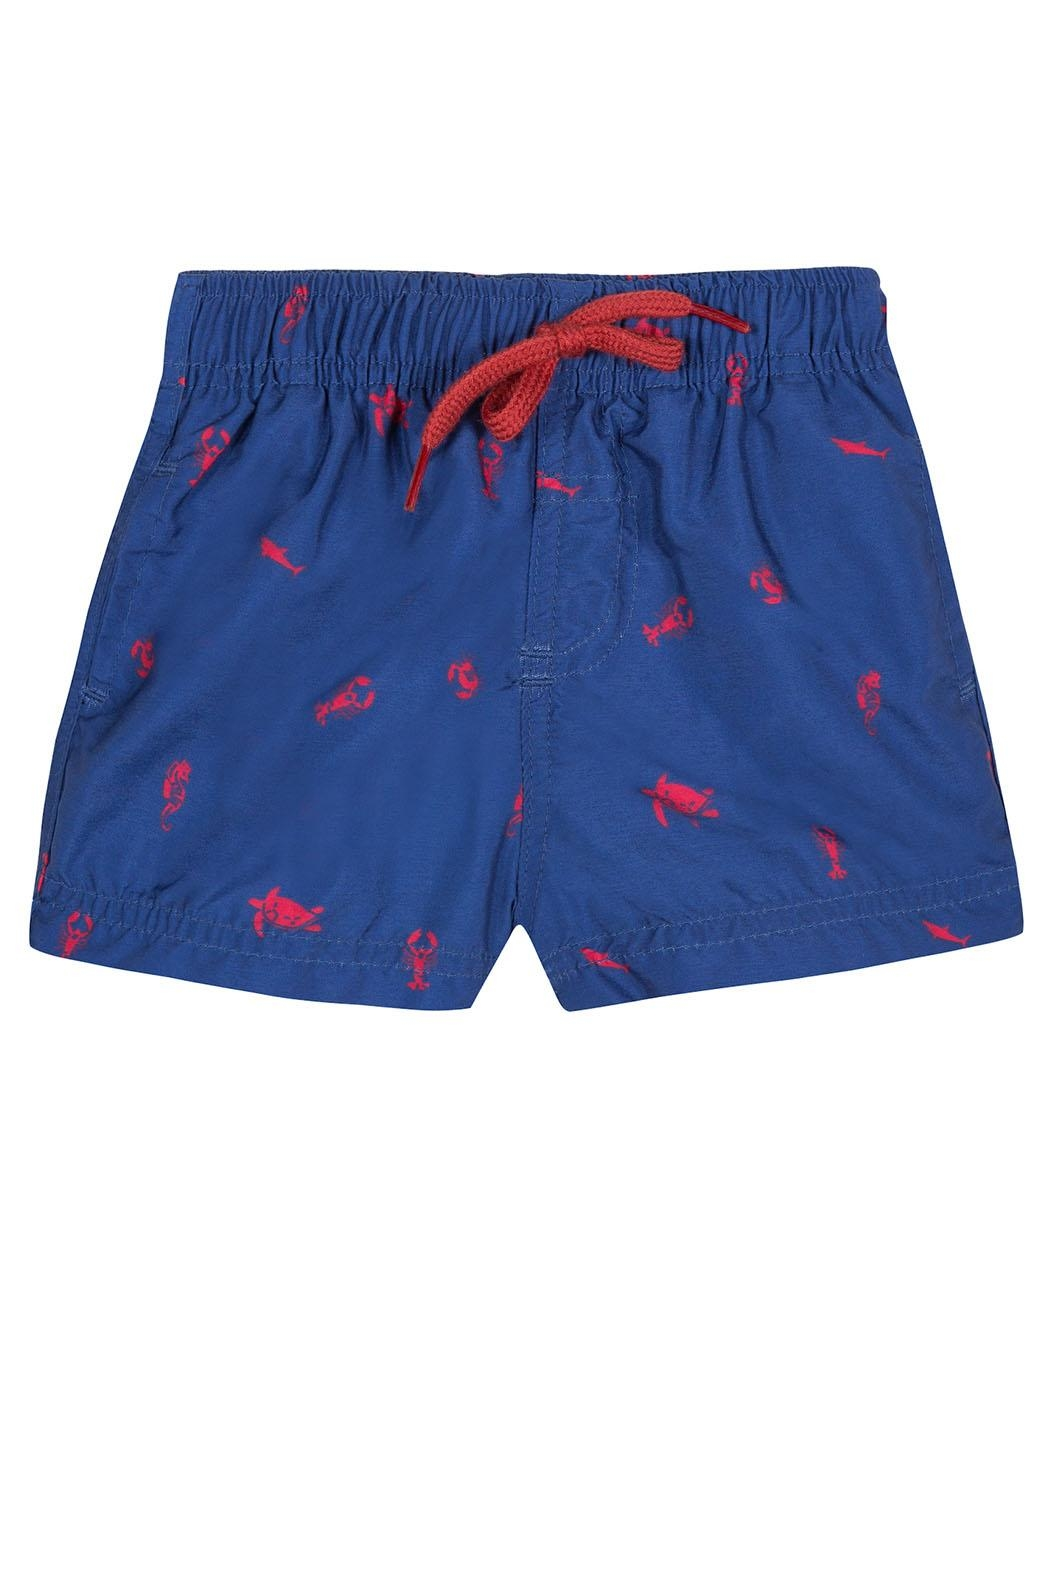 Tartine et Chocolat Lobster Embroidery Surfer-Shorts - Main Image